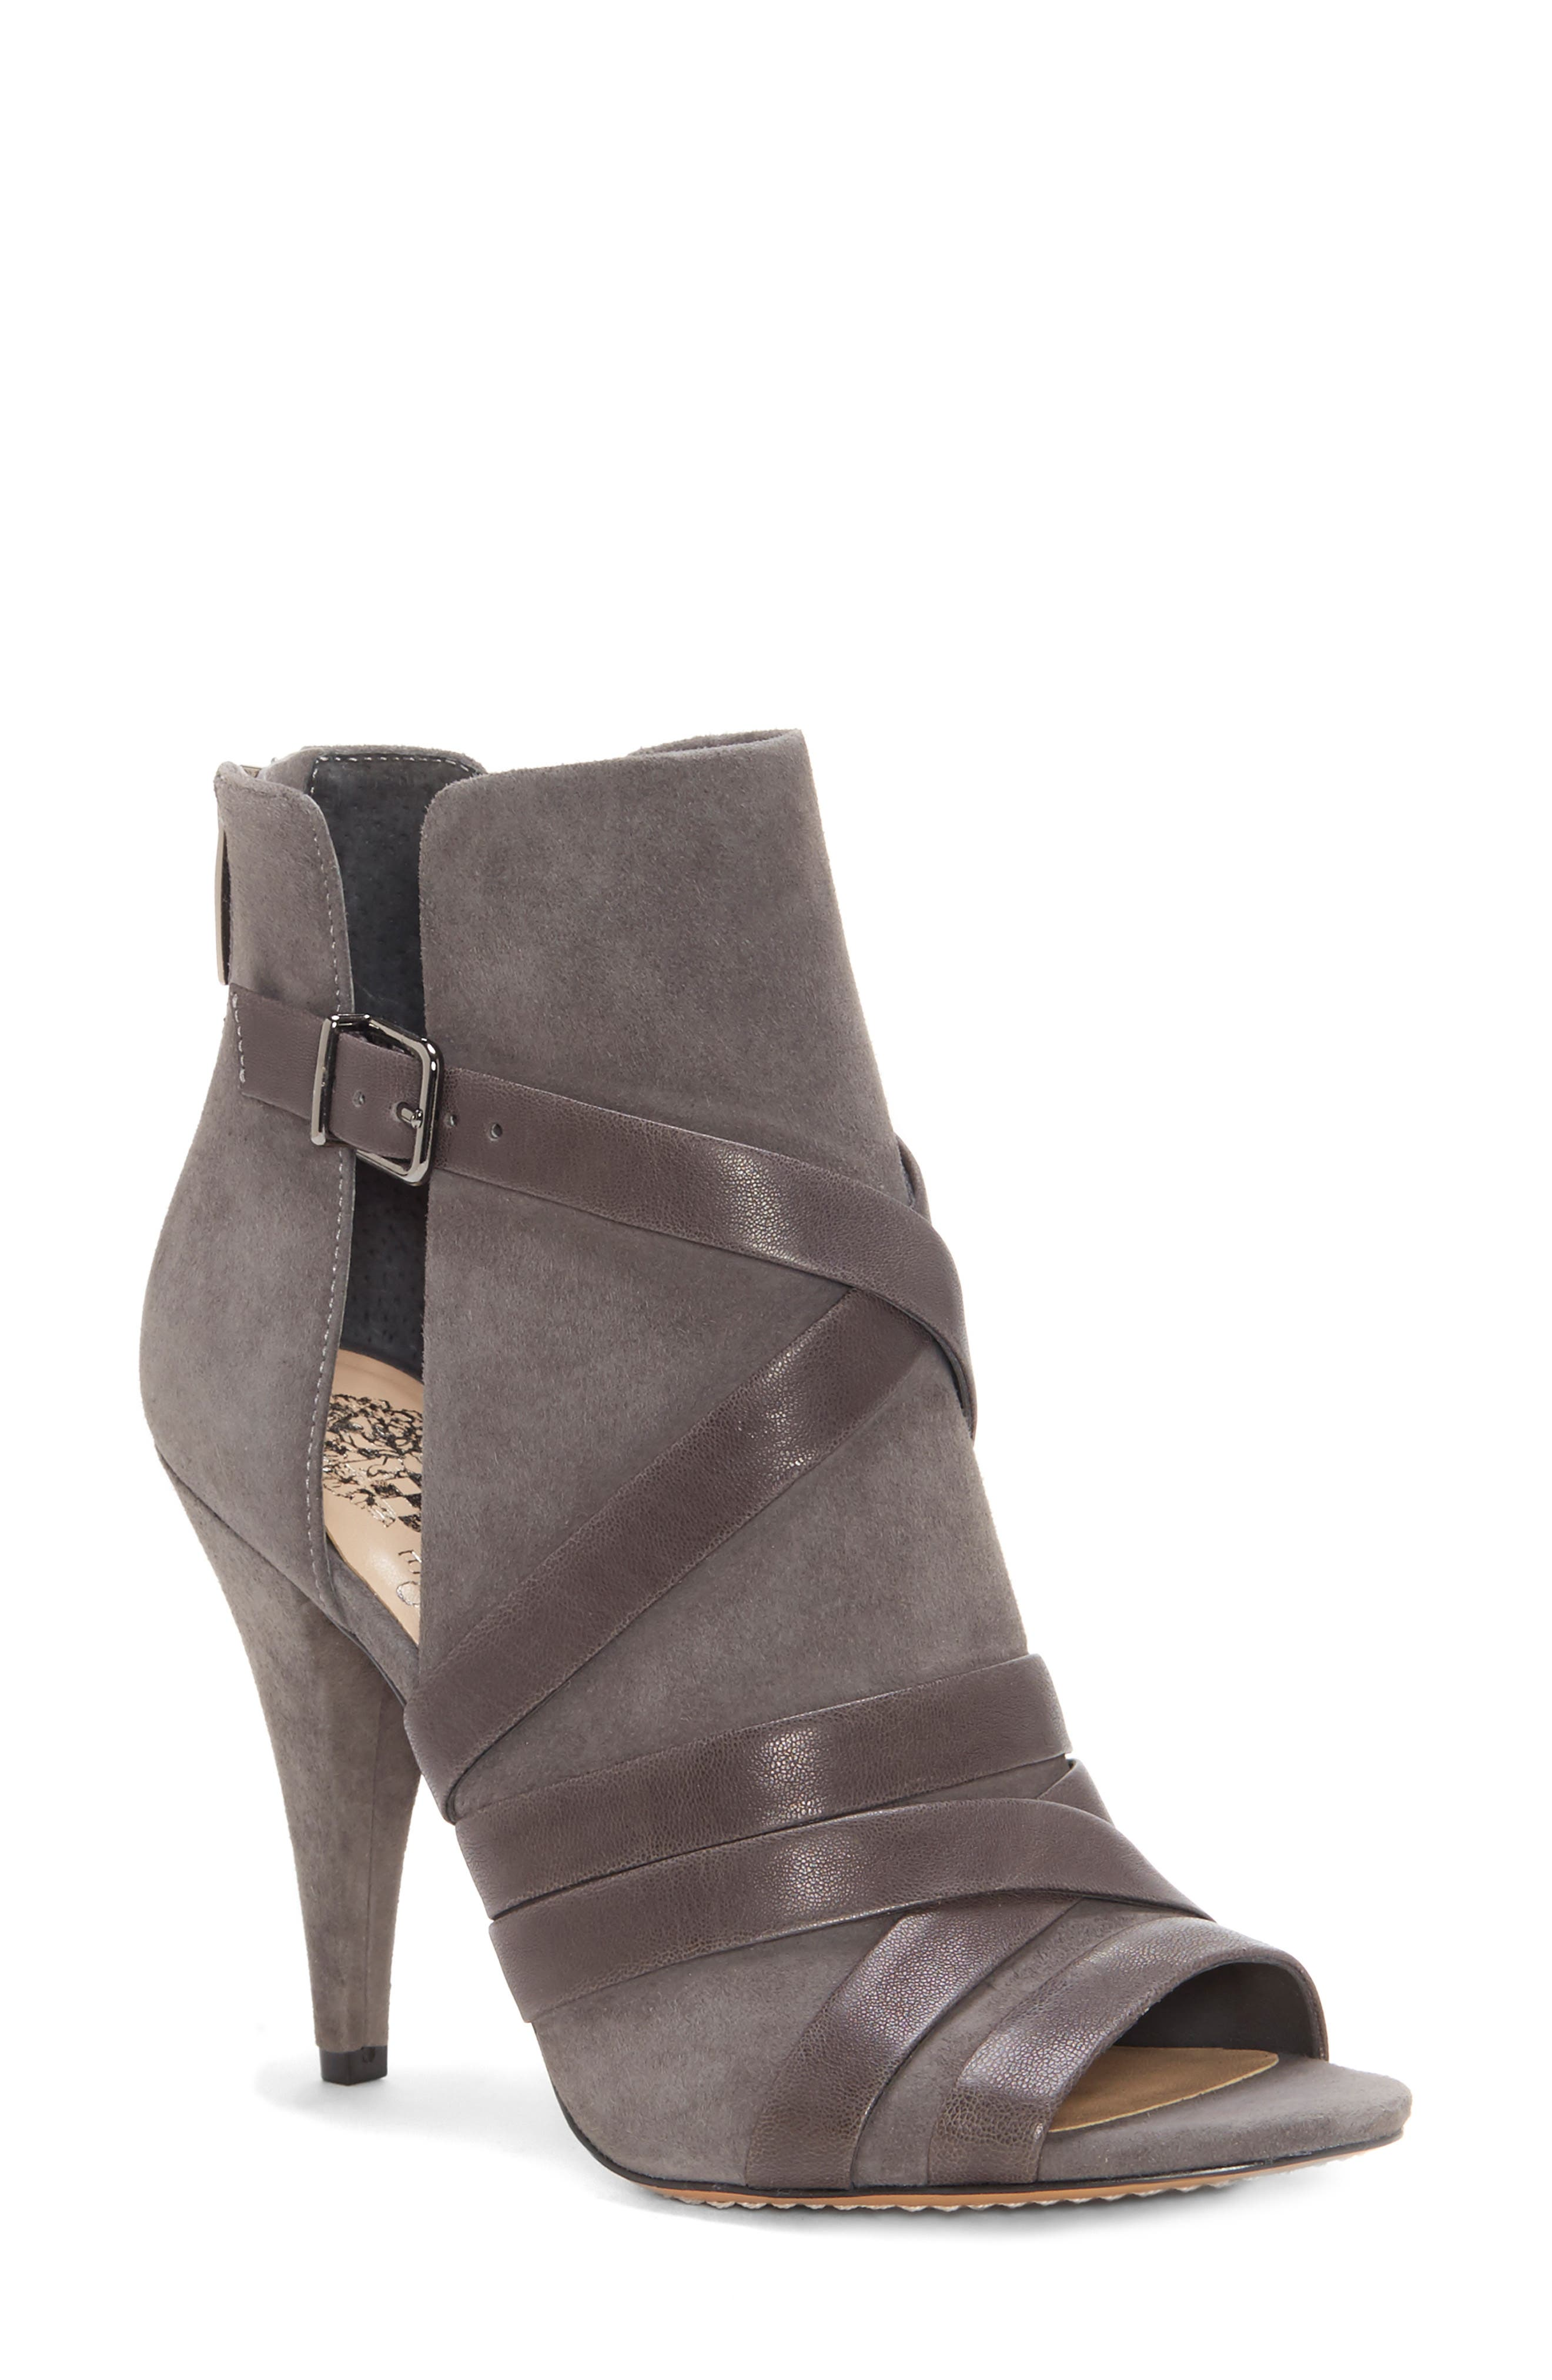 Achika Belted Peep Toe Bootie,                             Main thumbnail 1, color,                             POWER GREY LEATHER